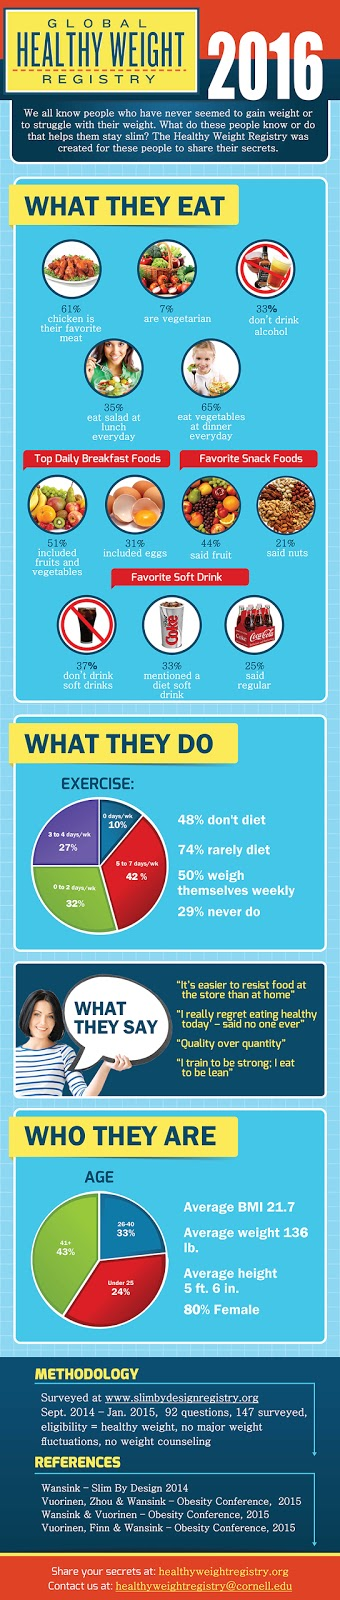 Mindlessly Slim, Cornell Food & Brand Lab infographic